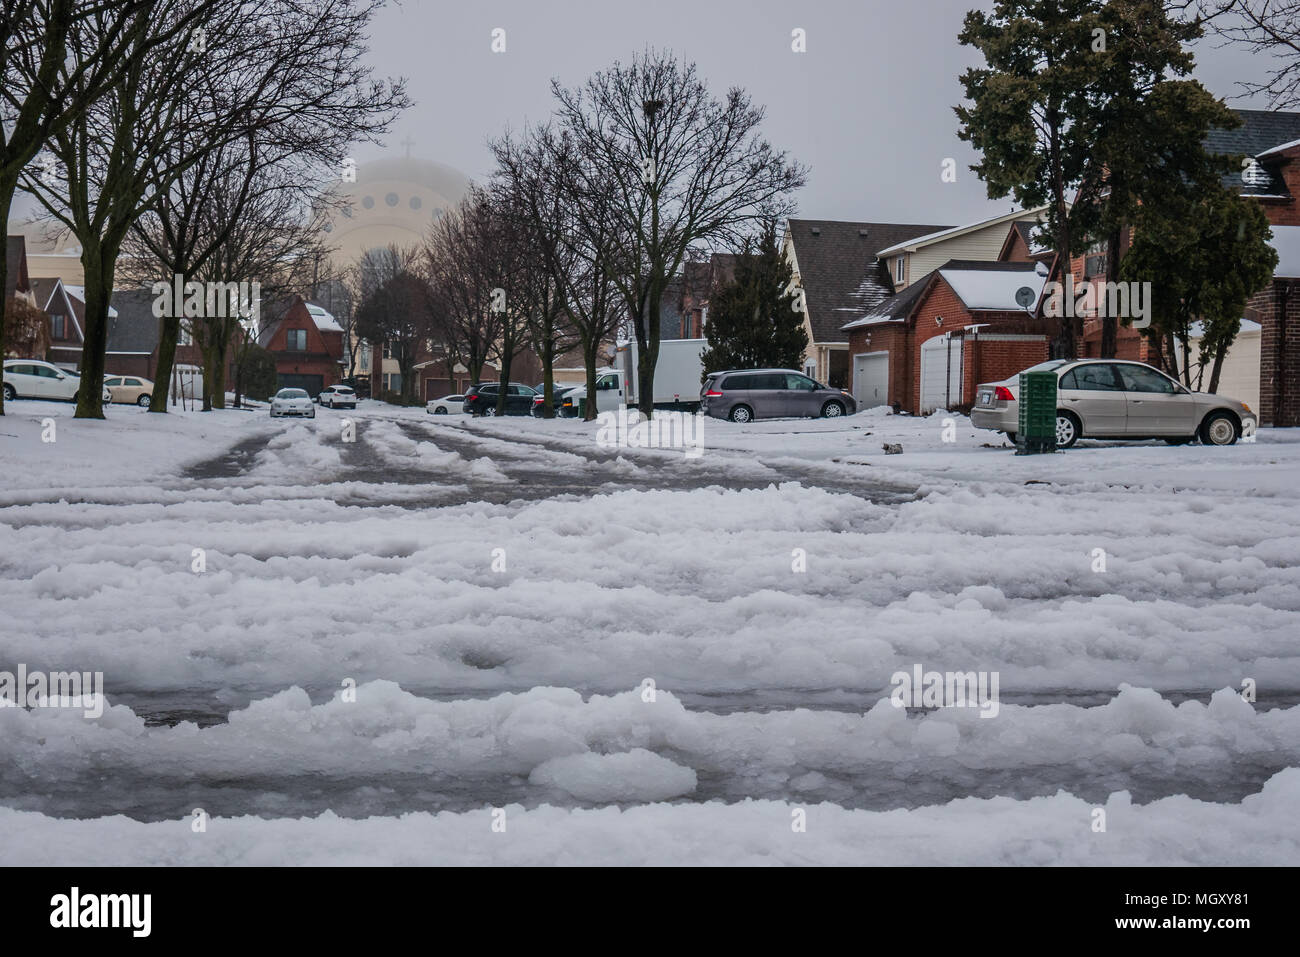 Slushy ice and snow creating a dangerous driving condition during Canadian winter - Stock Image